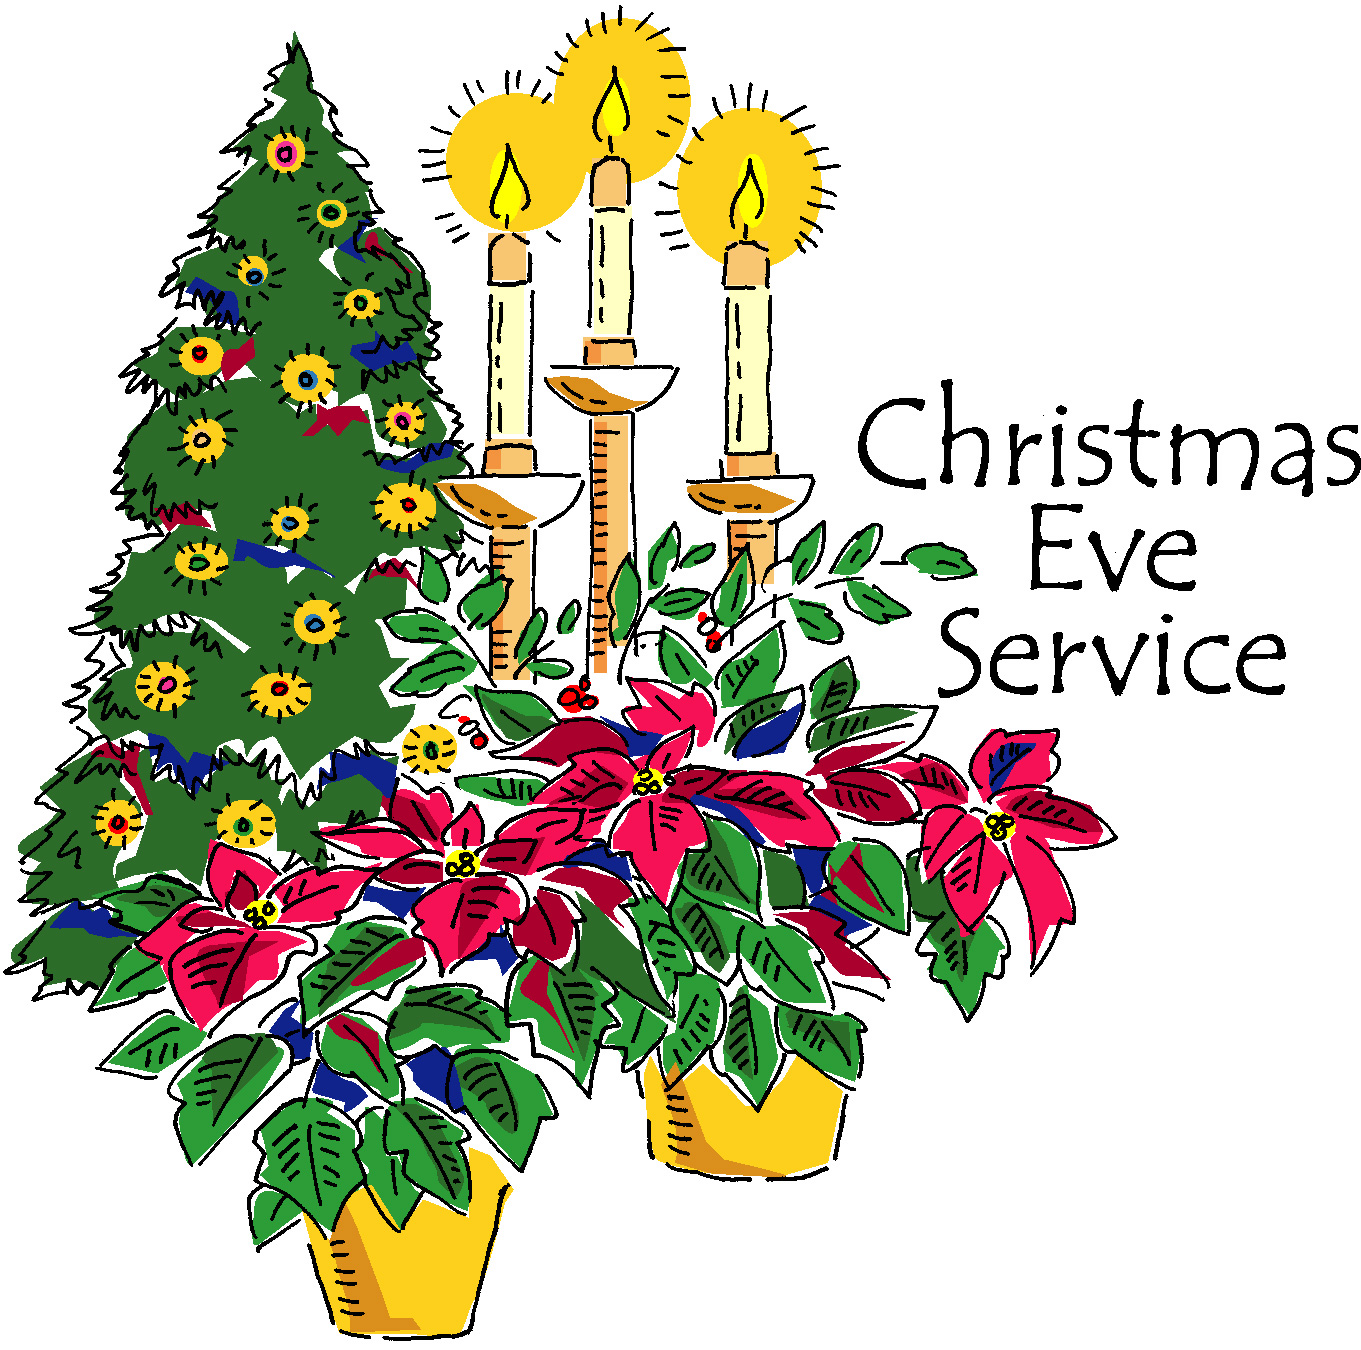 Christmas Eve Service Clipart (18+).